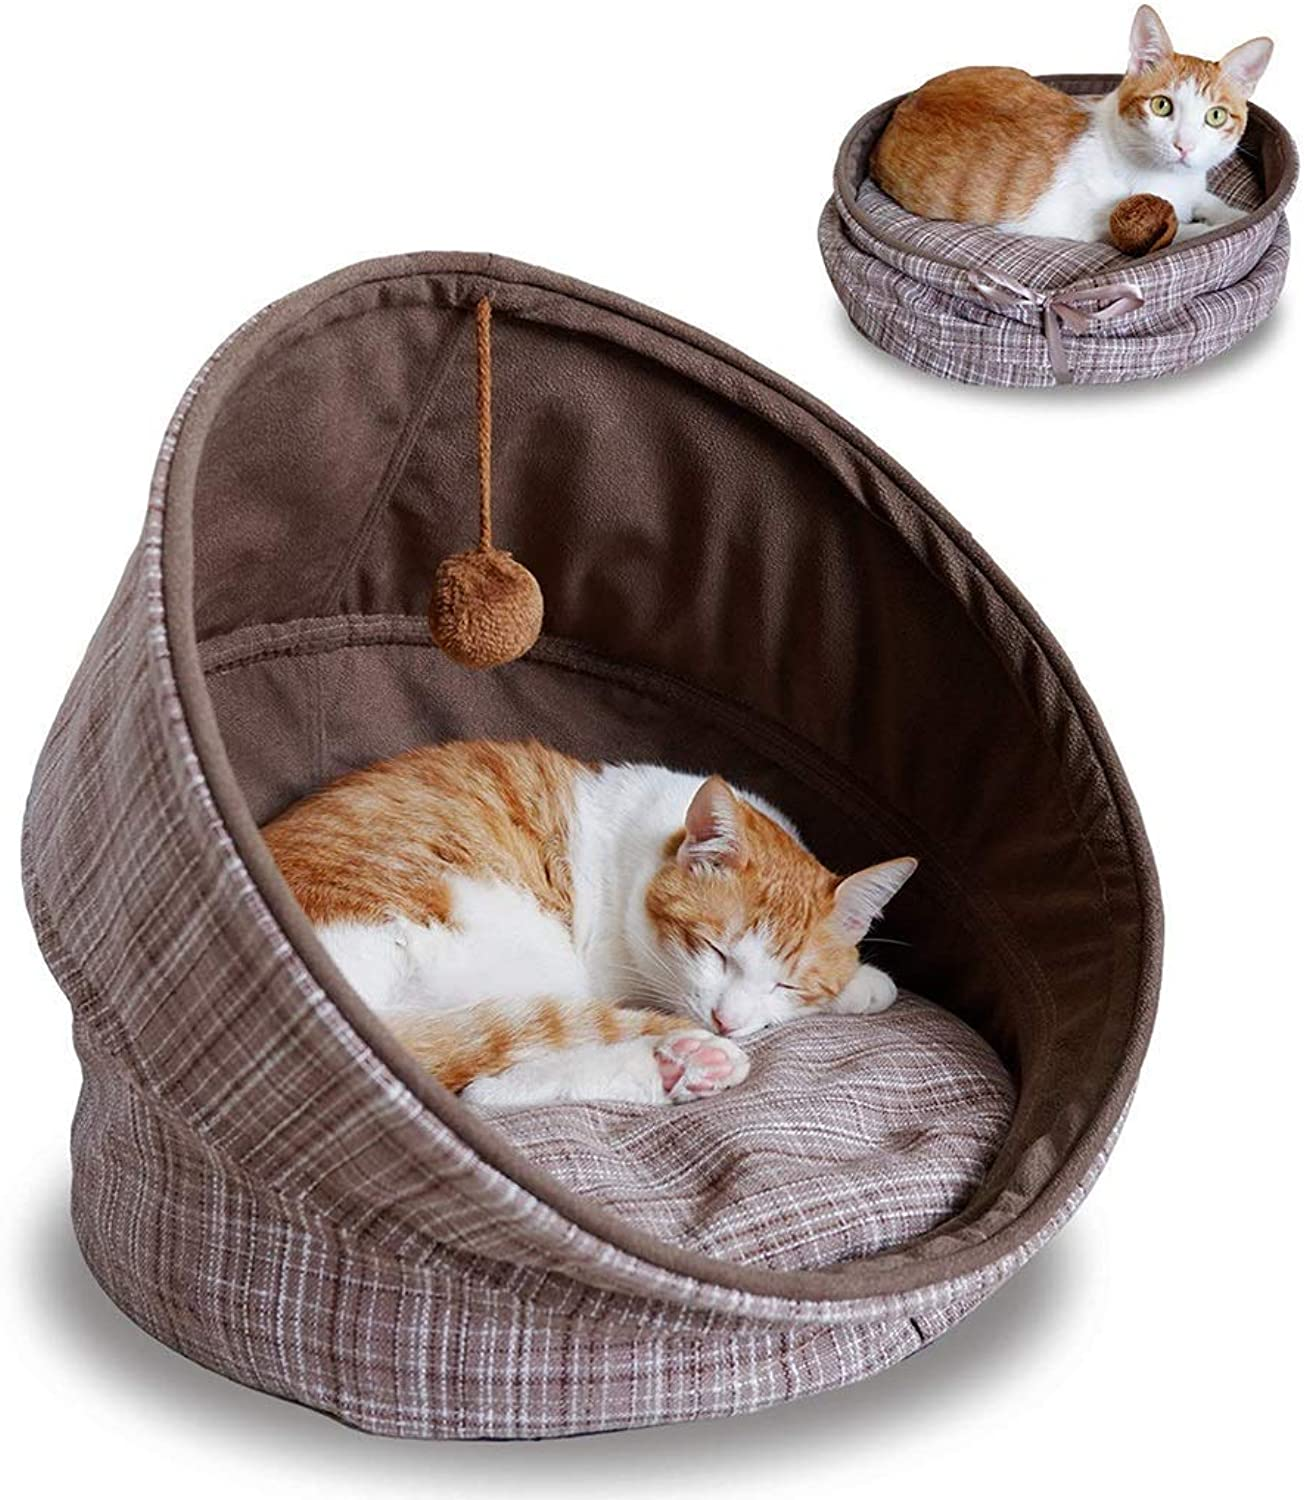 KYCD pet bed Pet Bed,Washable Folding Cat Sleeping Bags Round Pet Nest for Cats and Small Dogs with Soft Cushion Hanging Bell Toy Ball, Gift for Christmas New Year, Brown (18 inch)